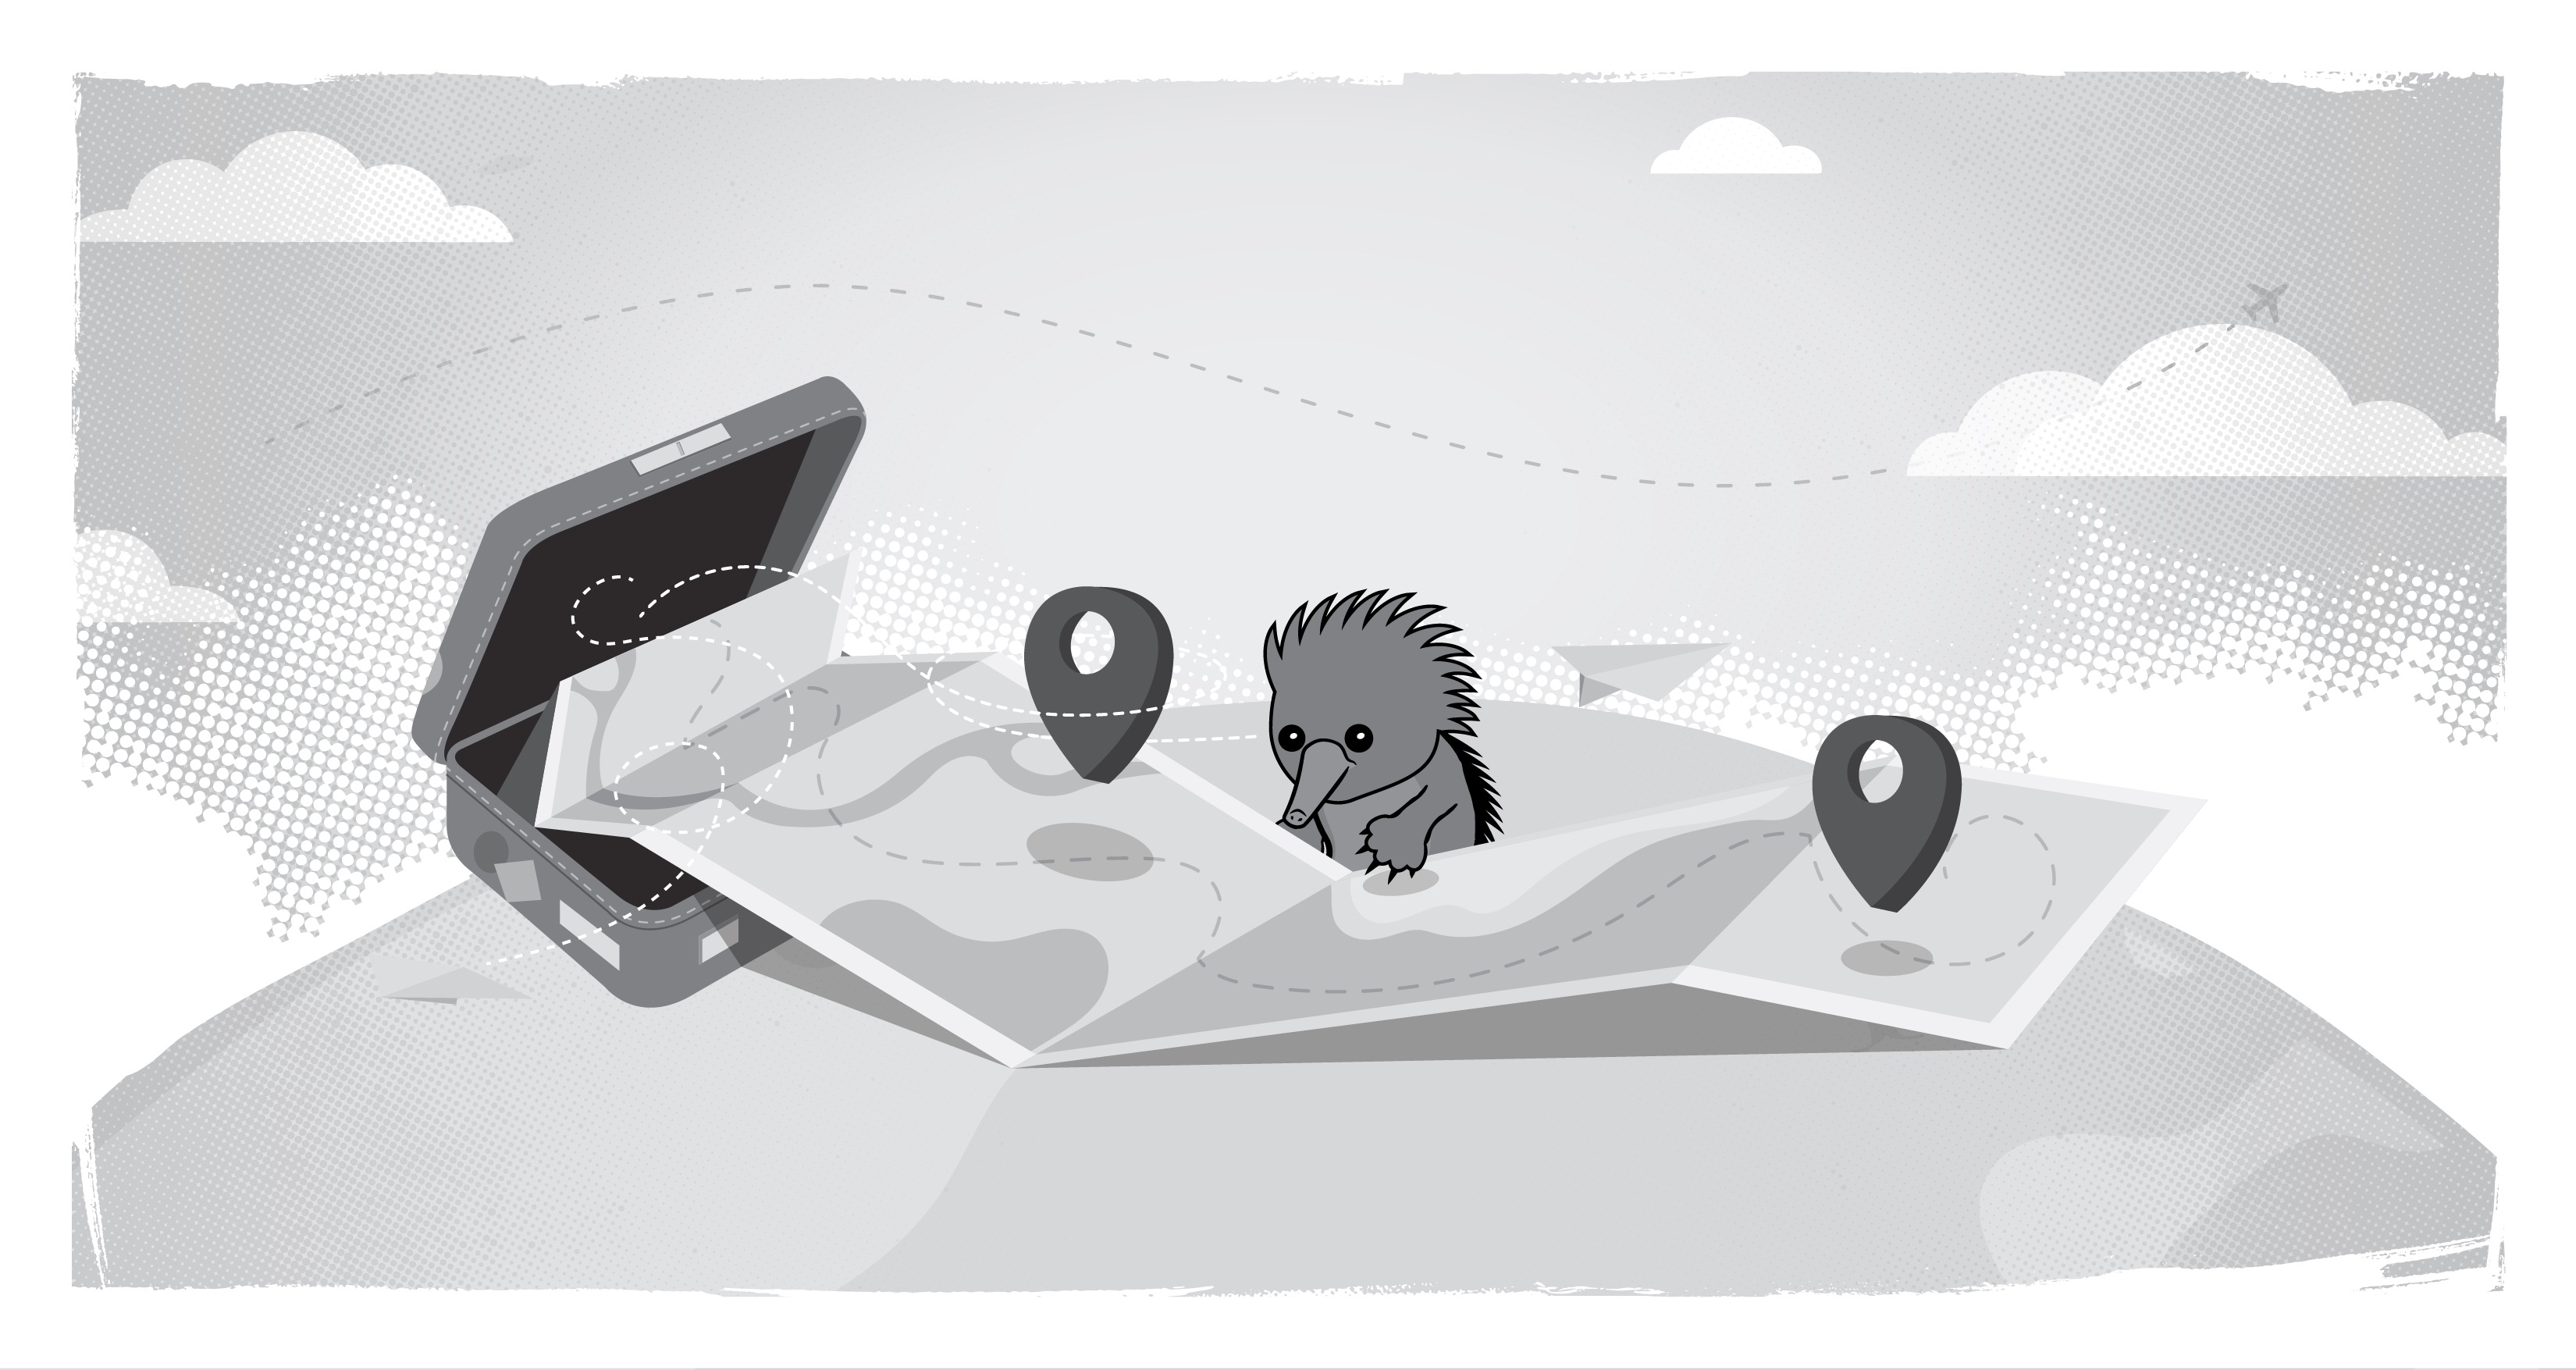 Echidna looking at a map